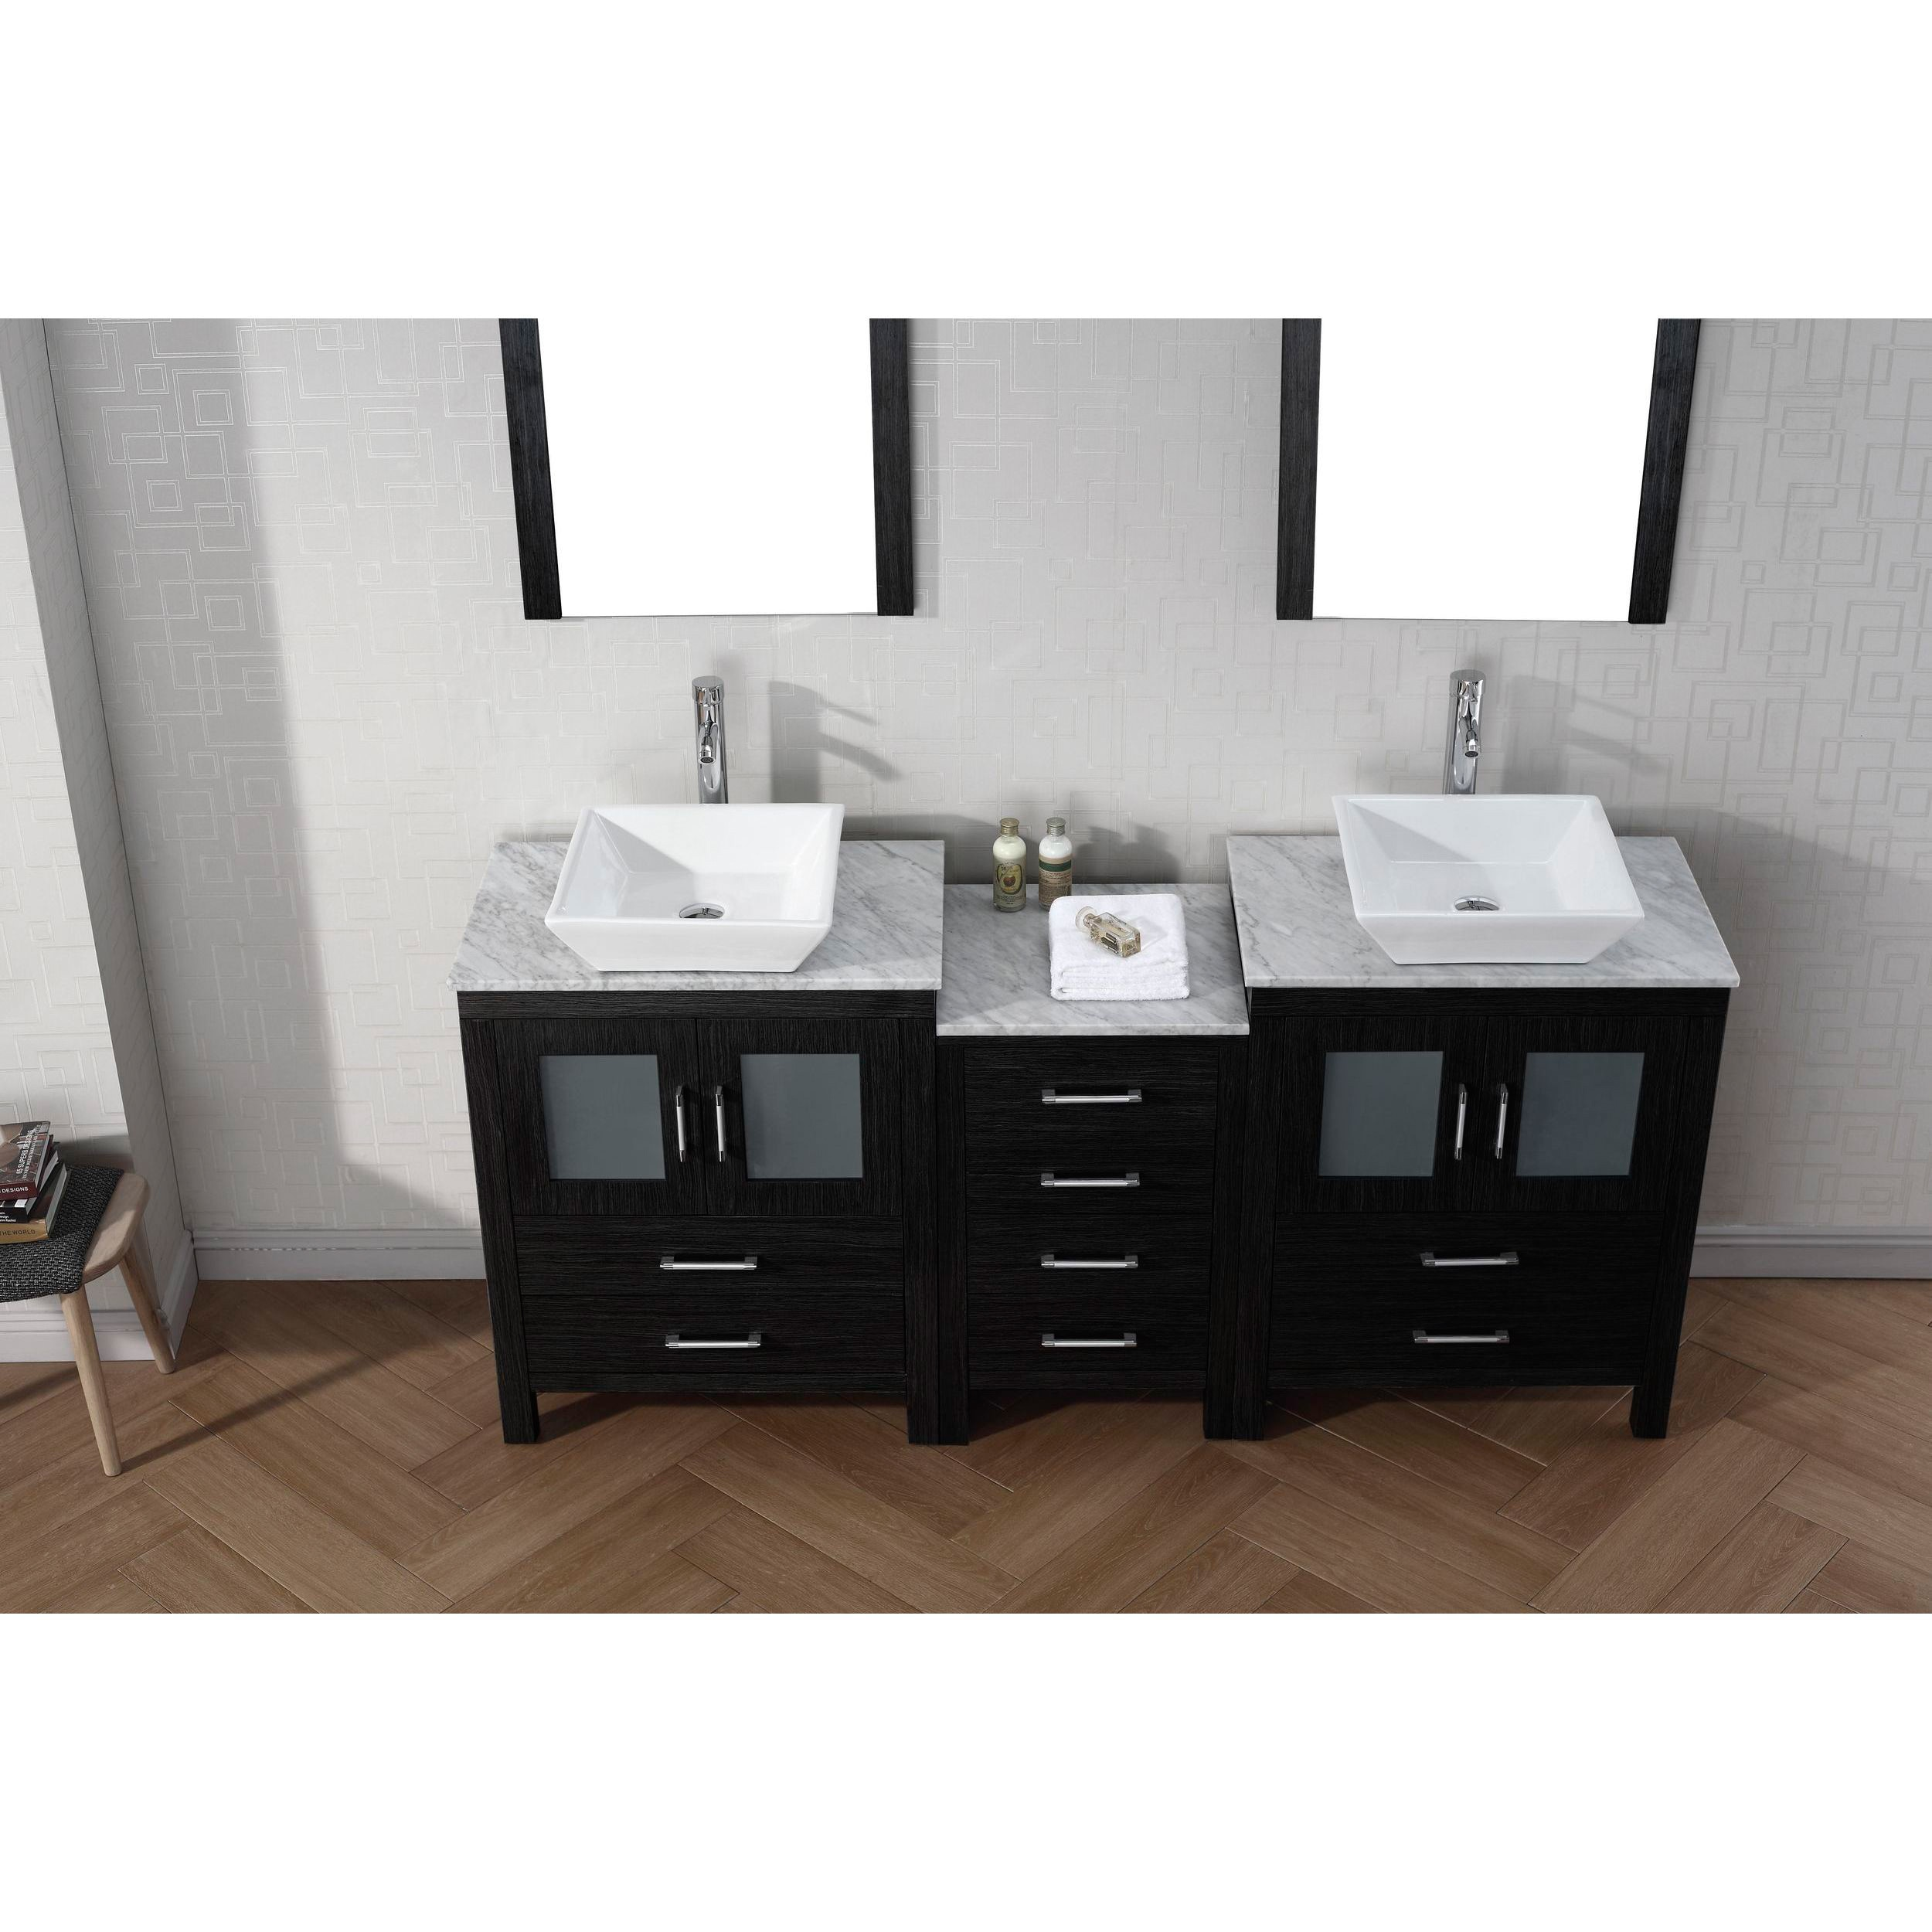 66 Inch Double Sink Vanity. Virtu USA Dior 66 inch Double Sink Vanity Set in Zebra Grey Free Shipping  Today Overstock com 16129150 The Best 98 Inch Home Decor